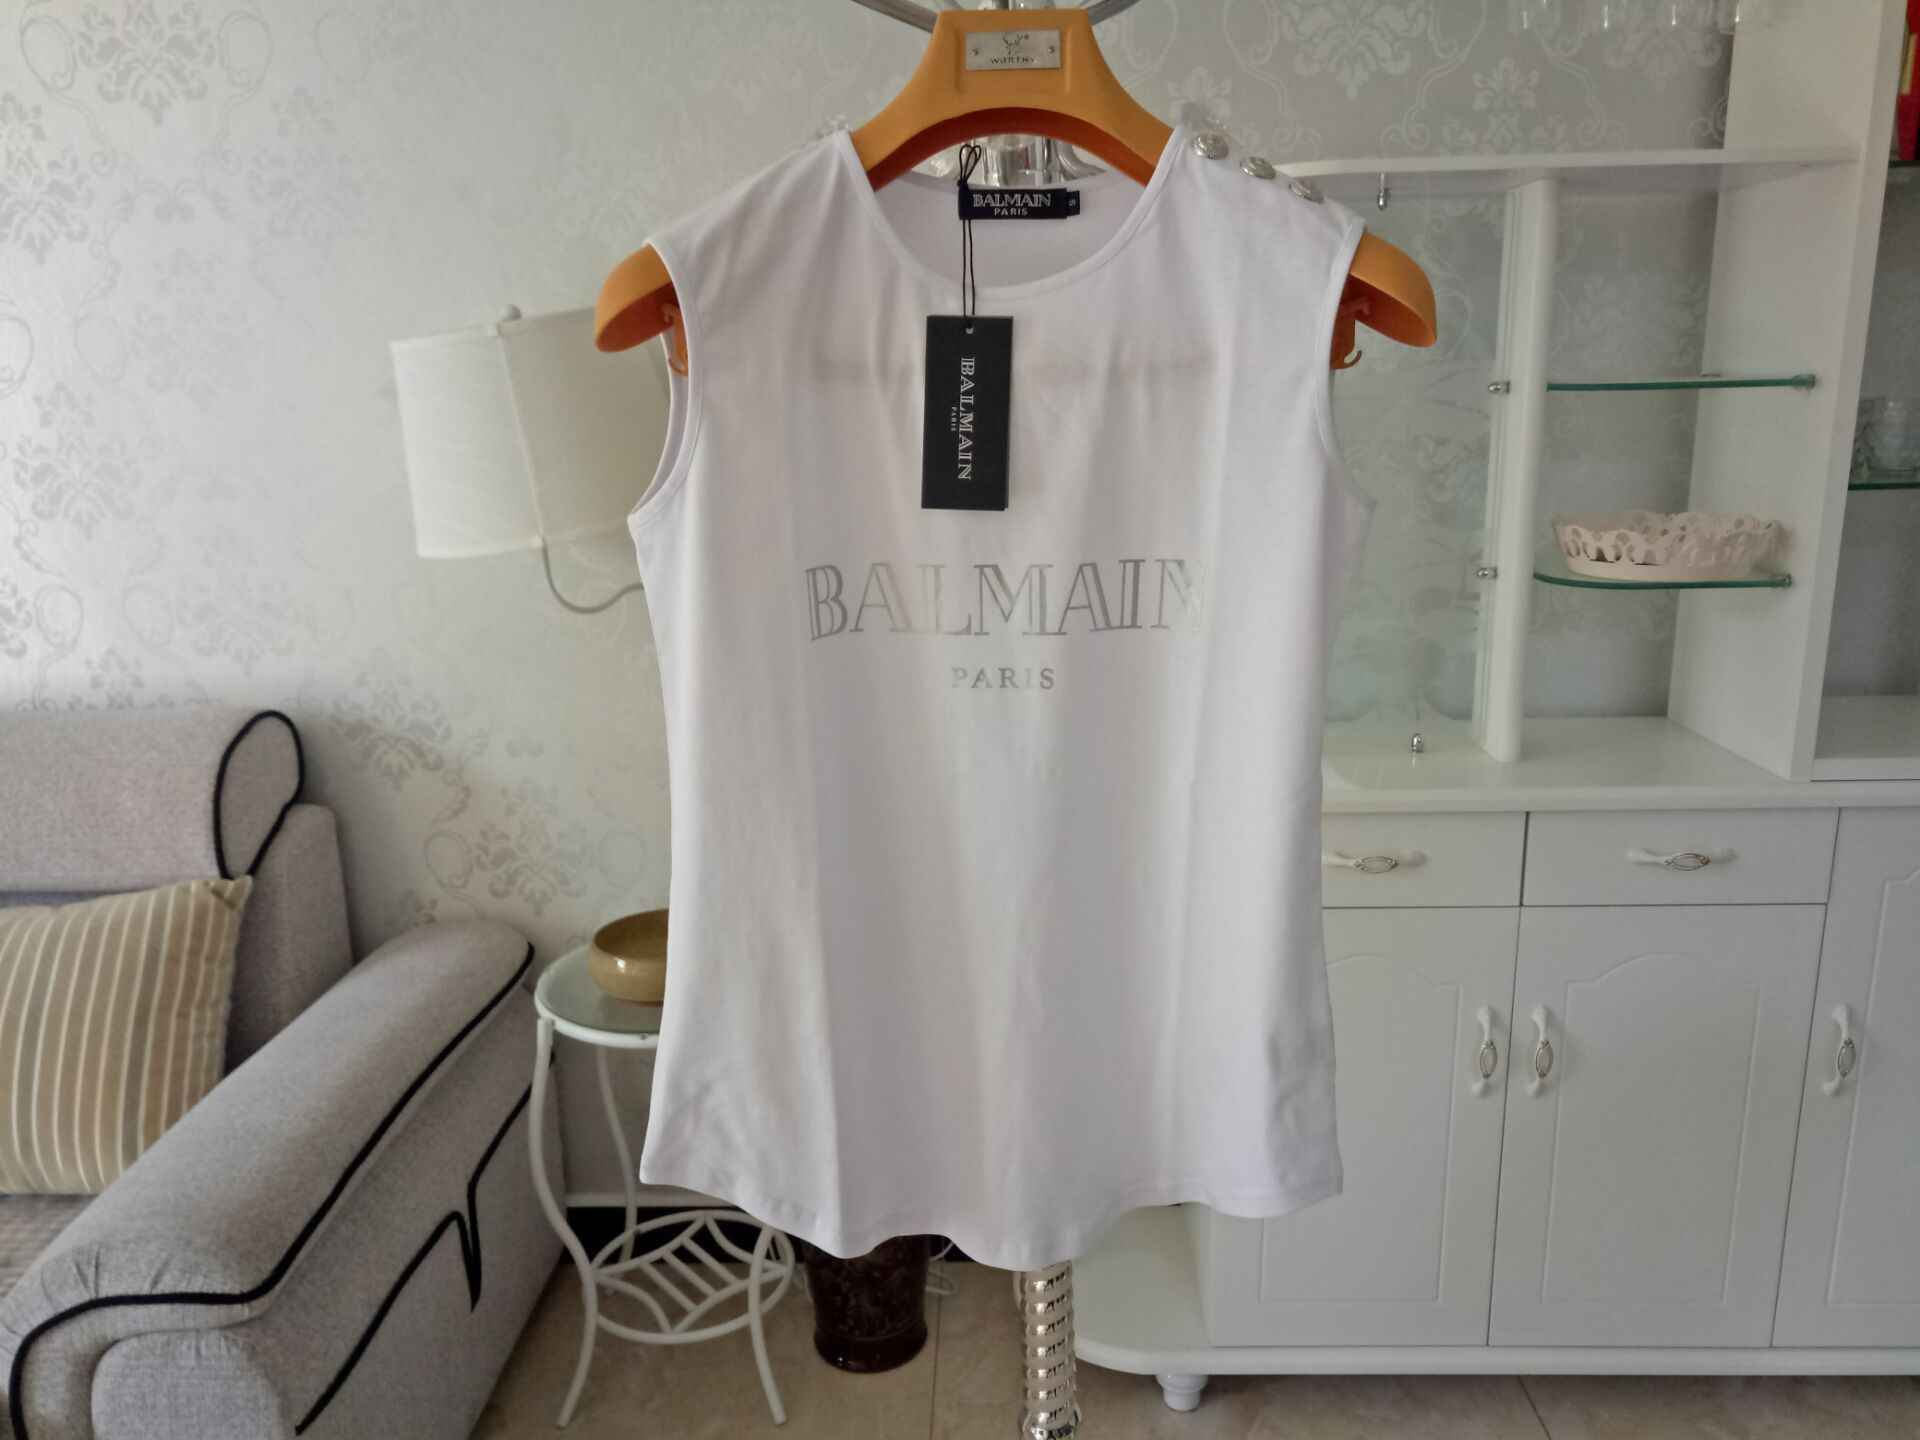 balmain shirt 2019 Balmain Women Designer T Shirt with Botton on Shoulder Fashion Women  Clothing Sleeveless Woman TShirts